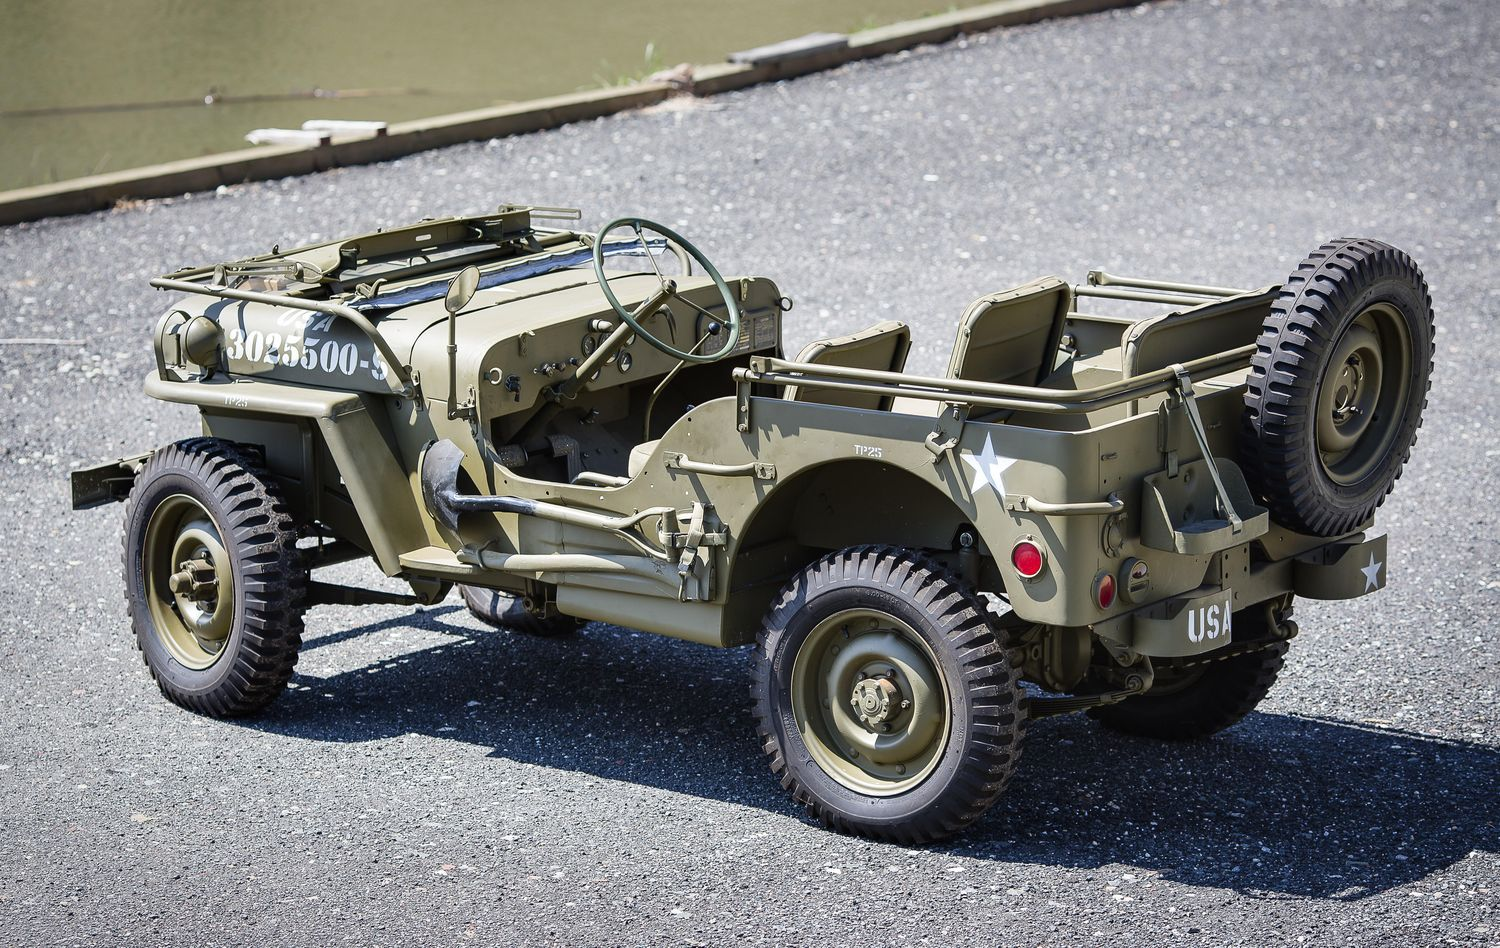 Military Jeep For Sale >> Willys Mb Wallpapers Military Hq Willys Mb Pictures 4k